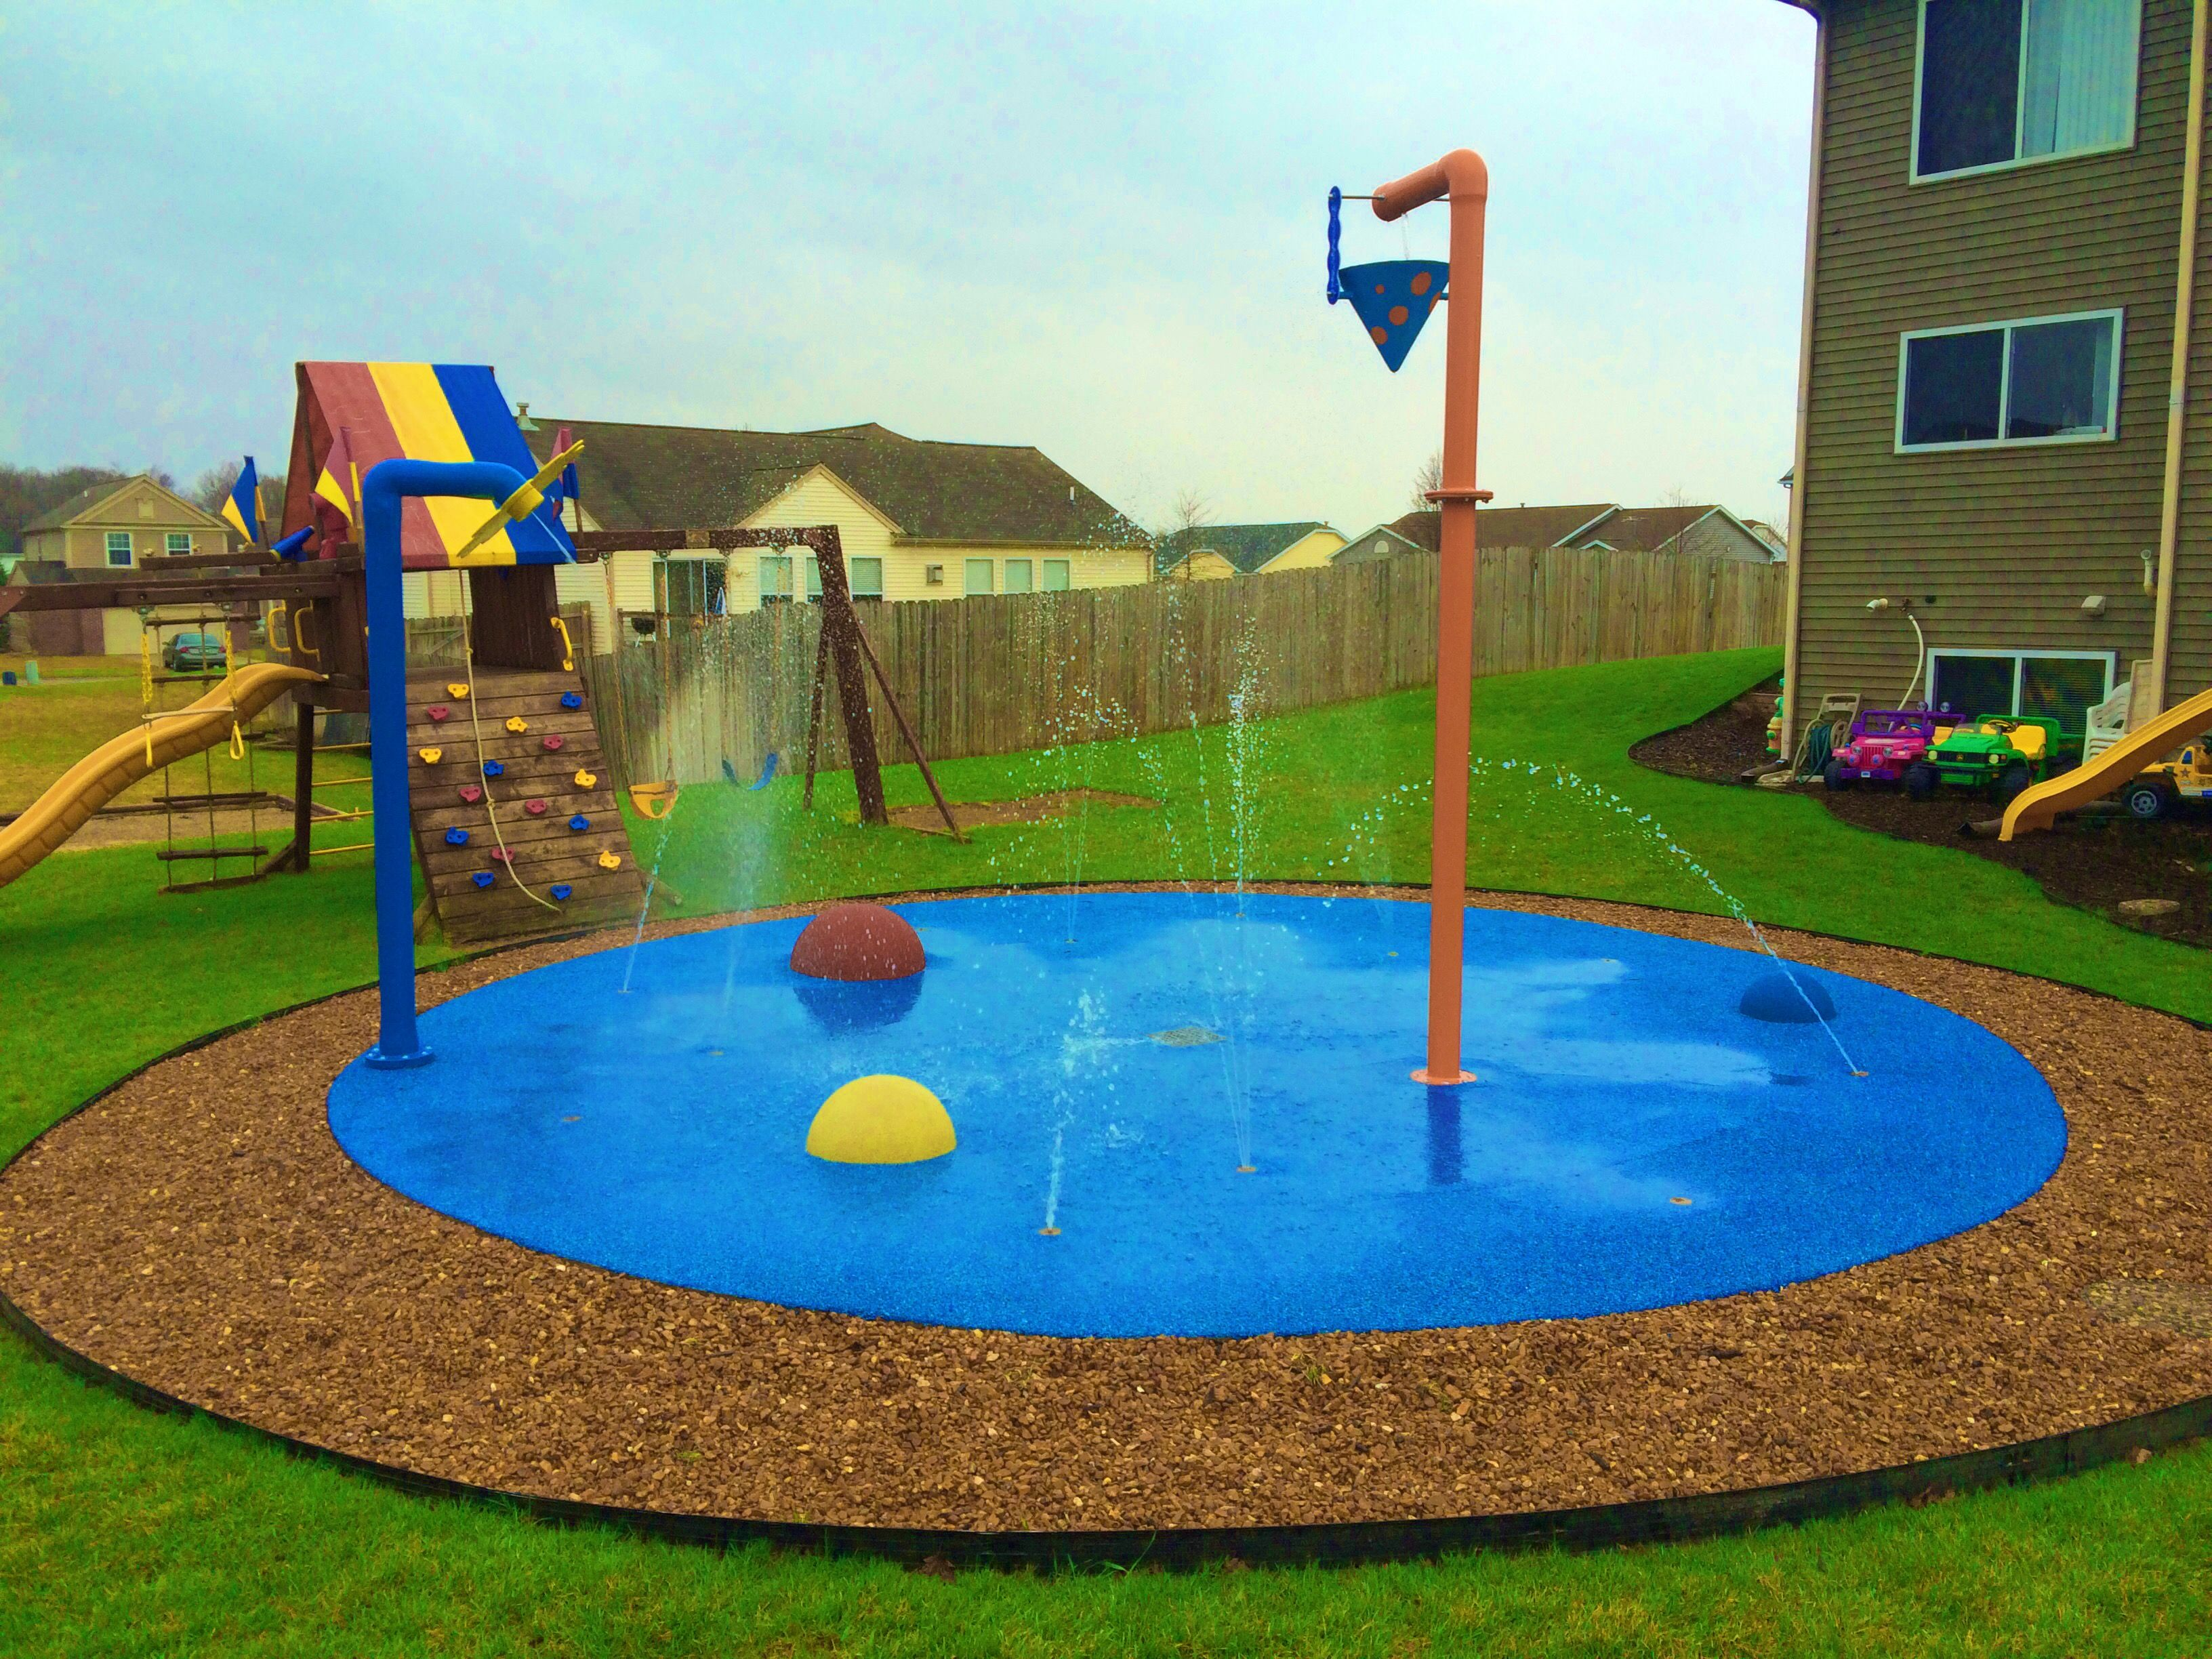 My Splash Pad Puts The Fun In Your Backyard Residential Pads Safety Surfaces By